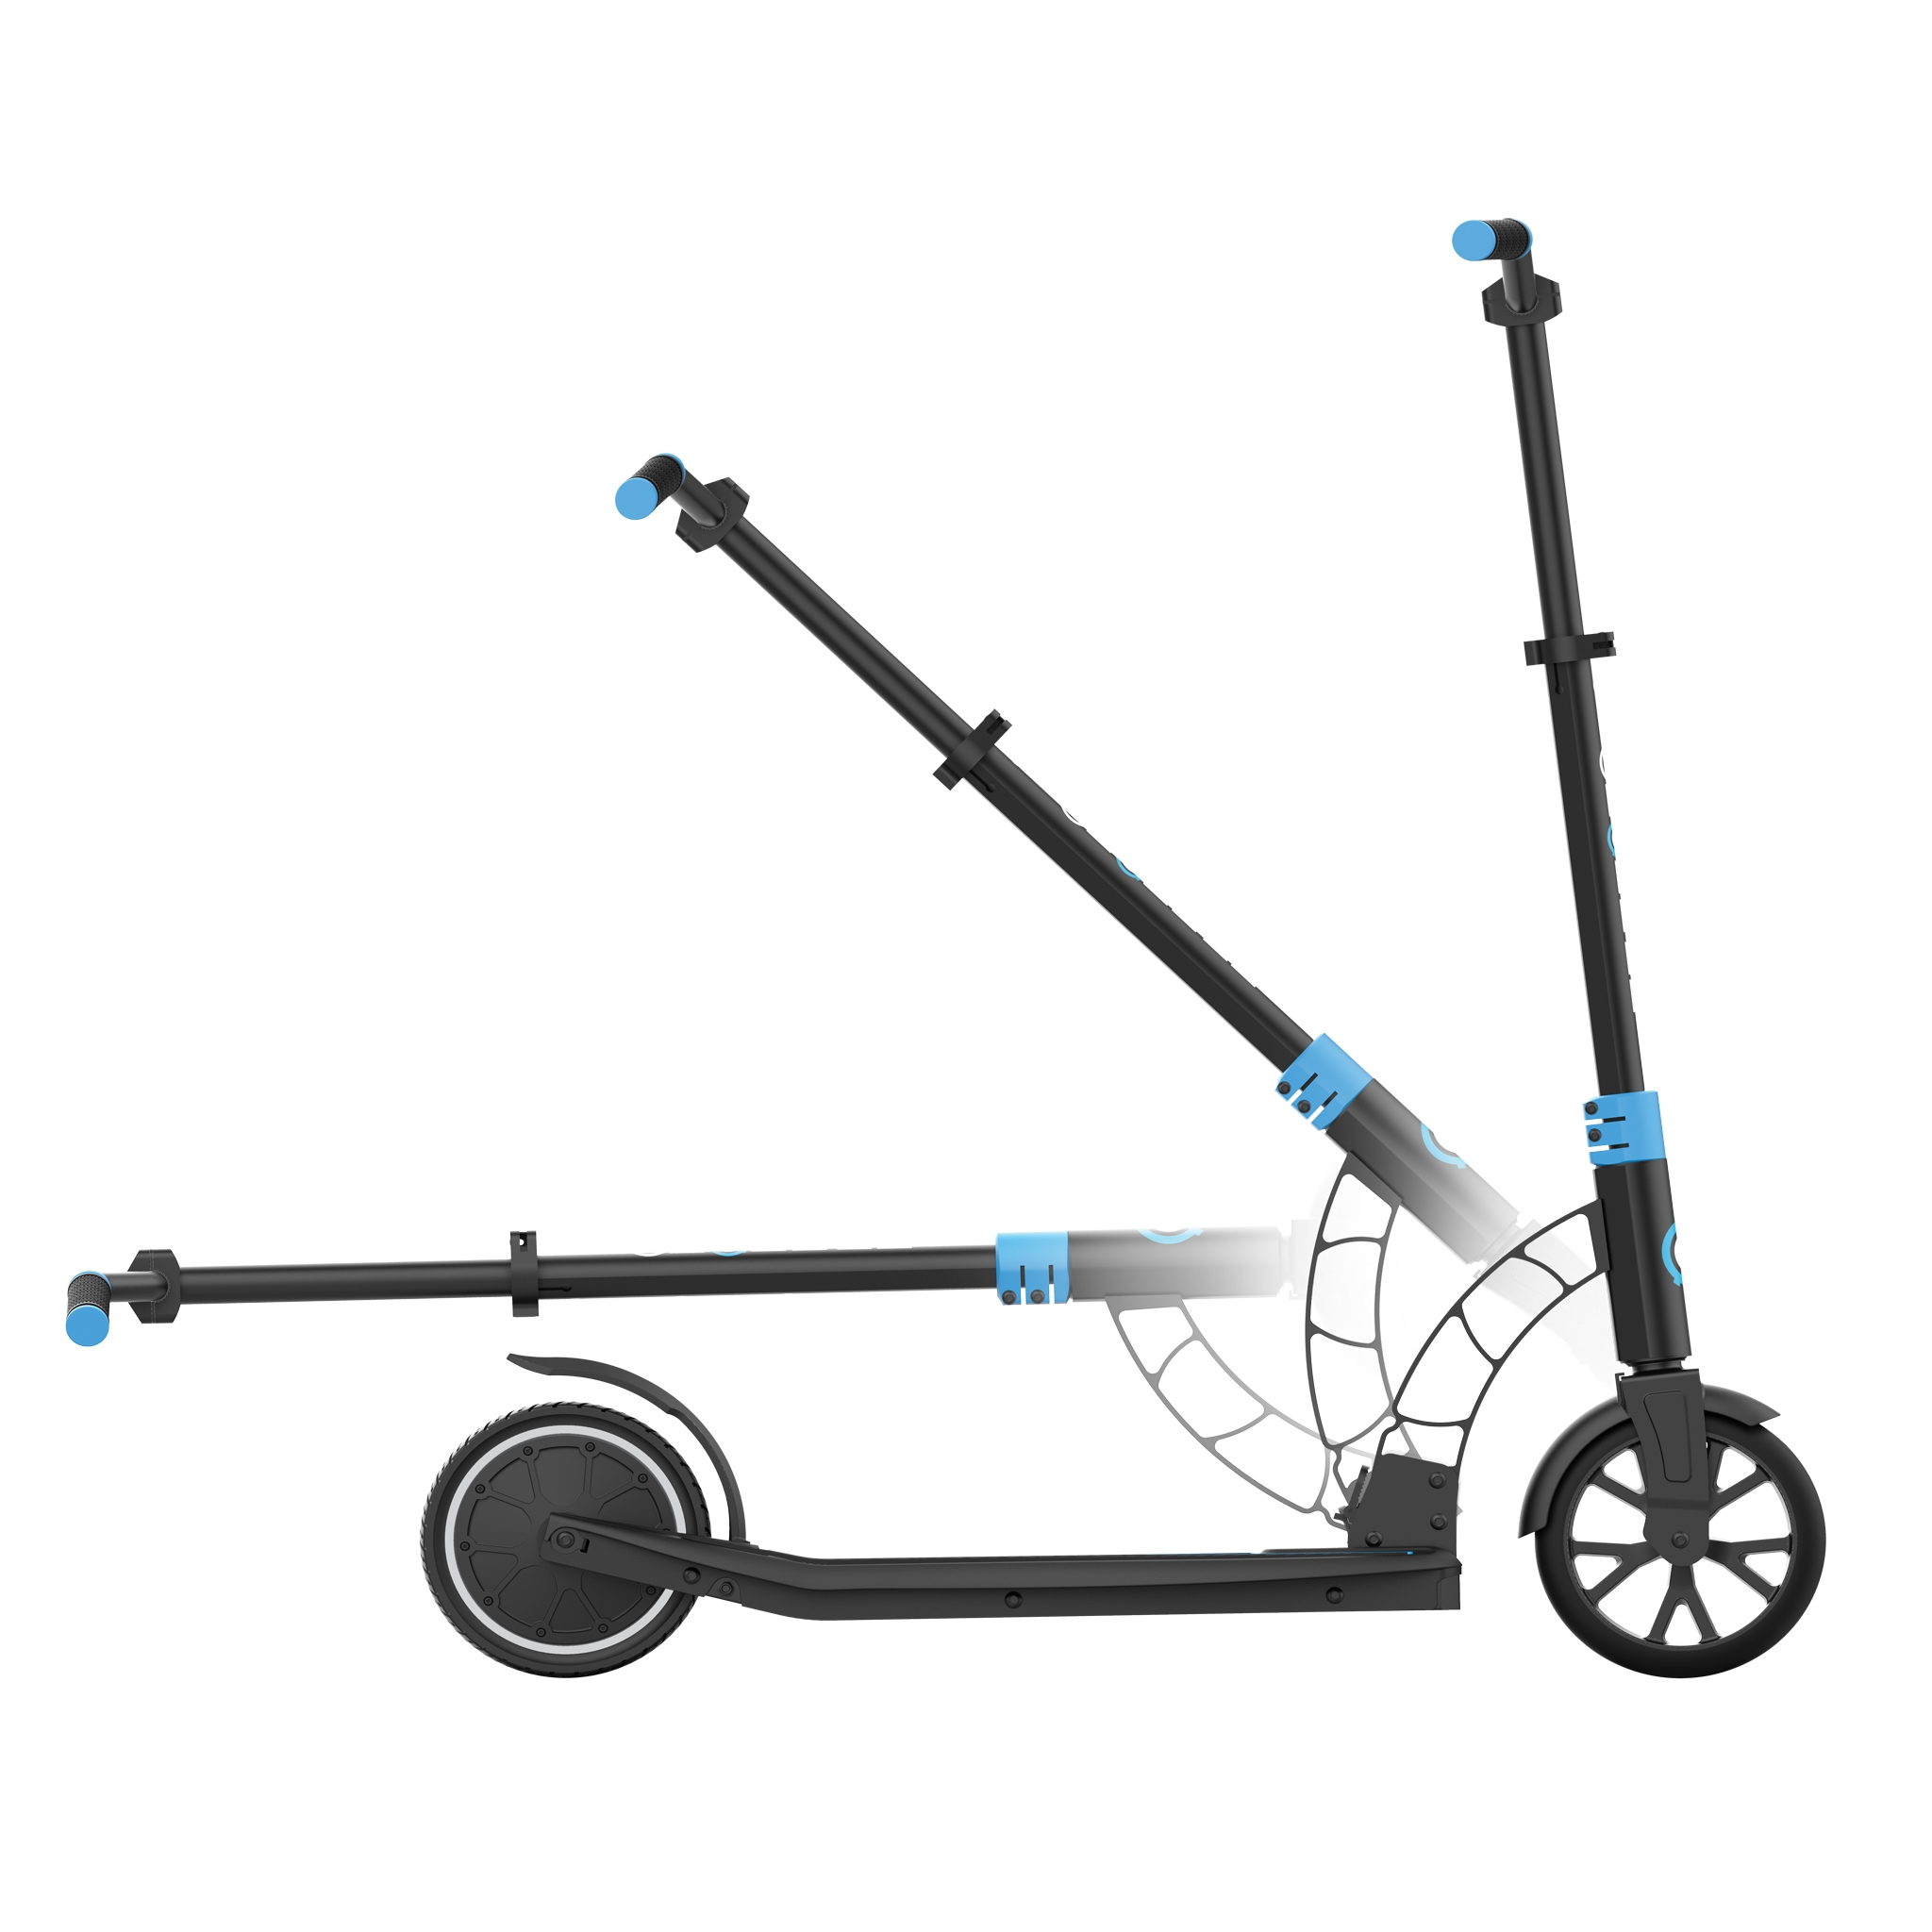 Globber-ONE-K-E-MOTION-15-electric-scooter-for-teens-and-young-adults-robust-foldable-e-scooter-sky-blue